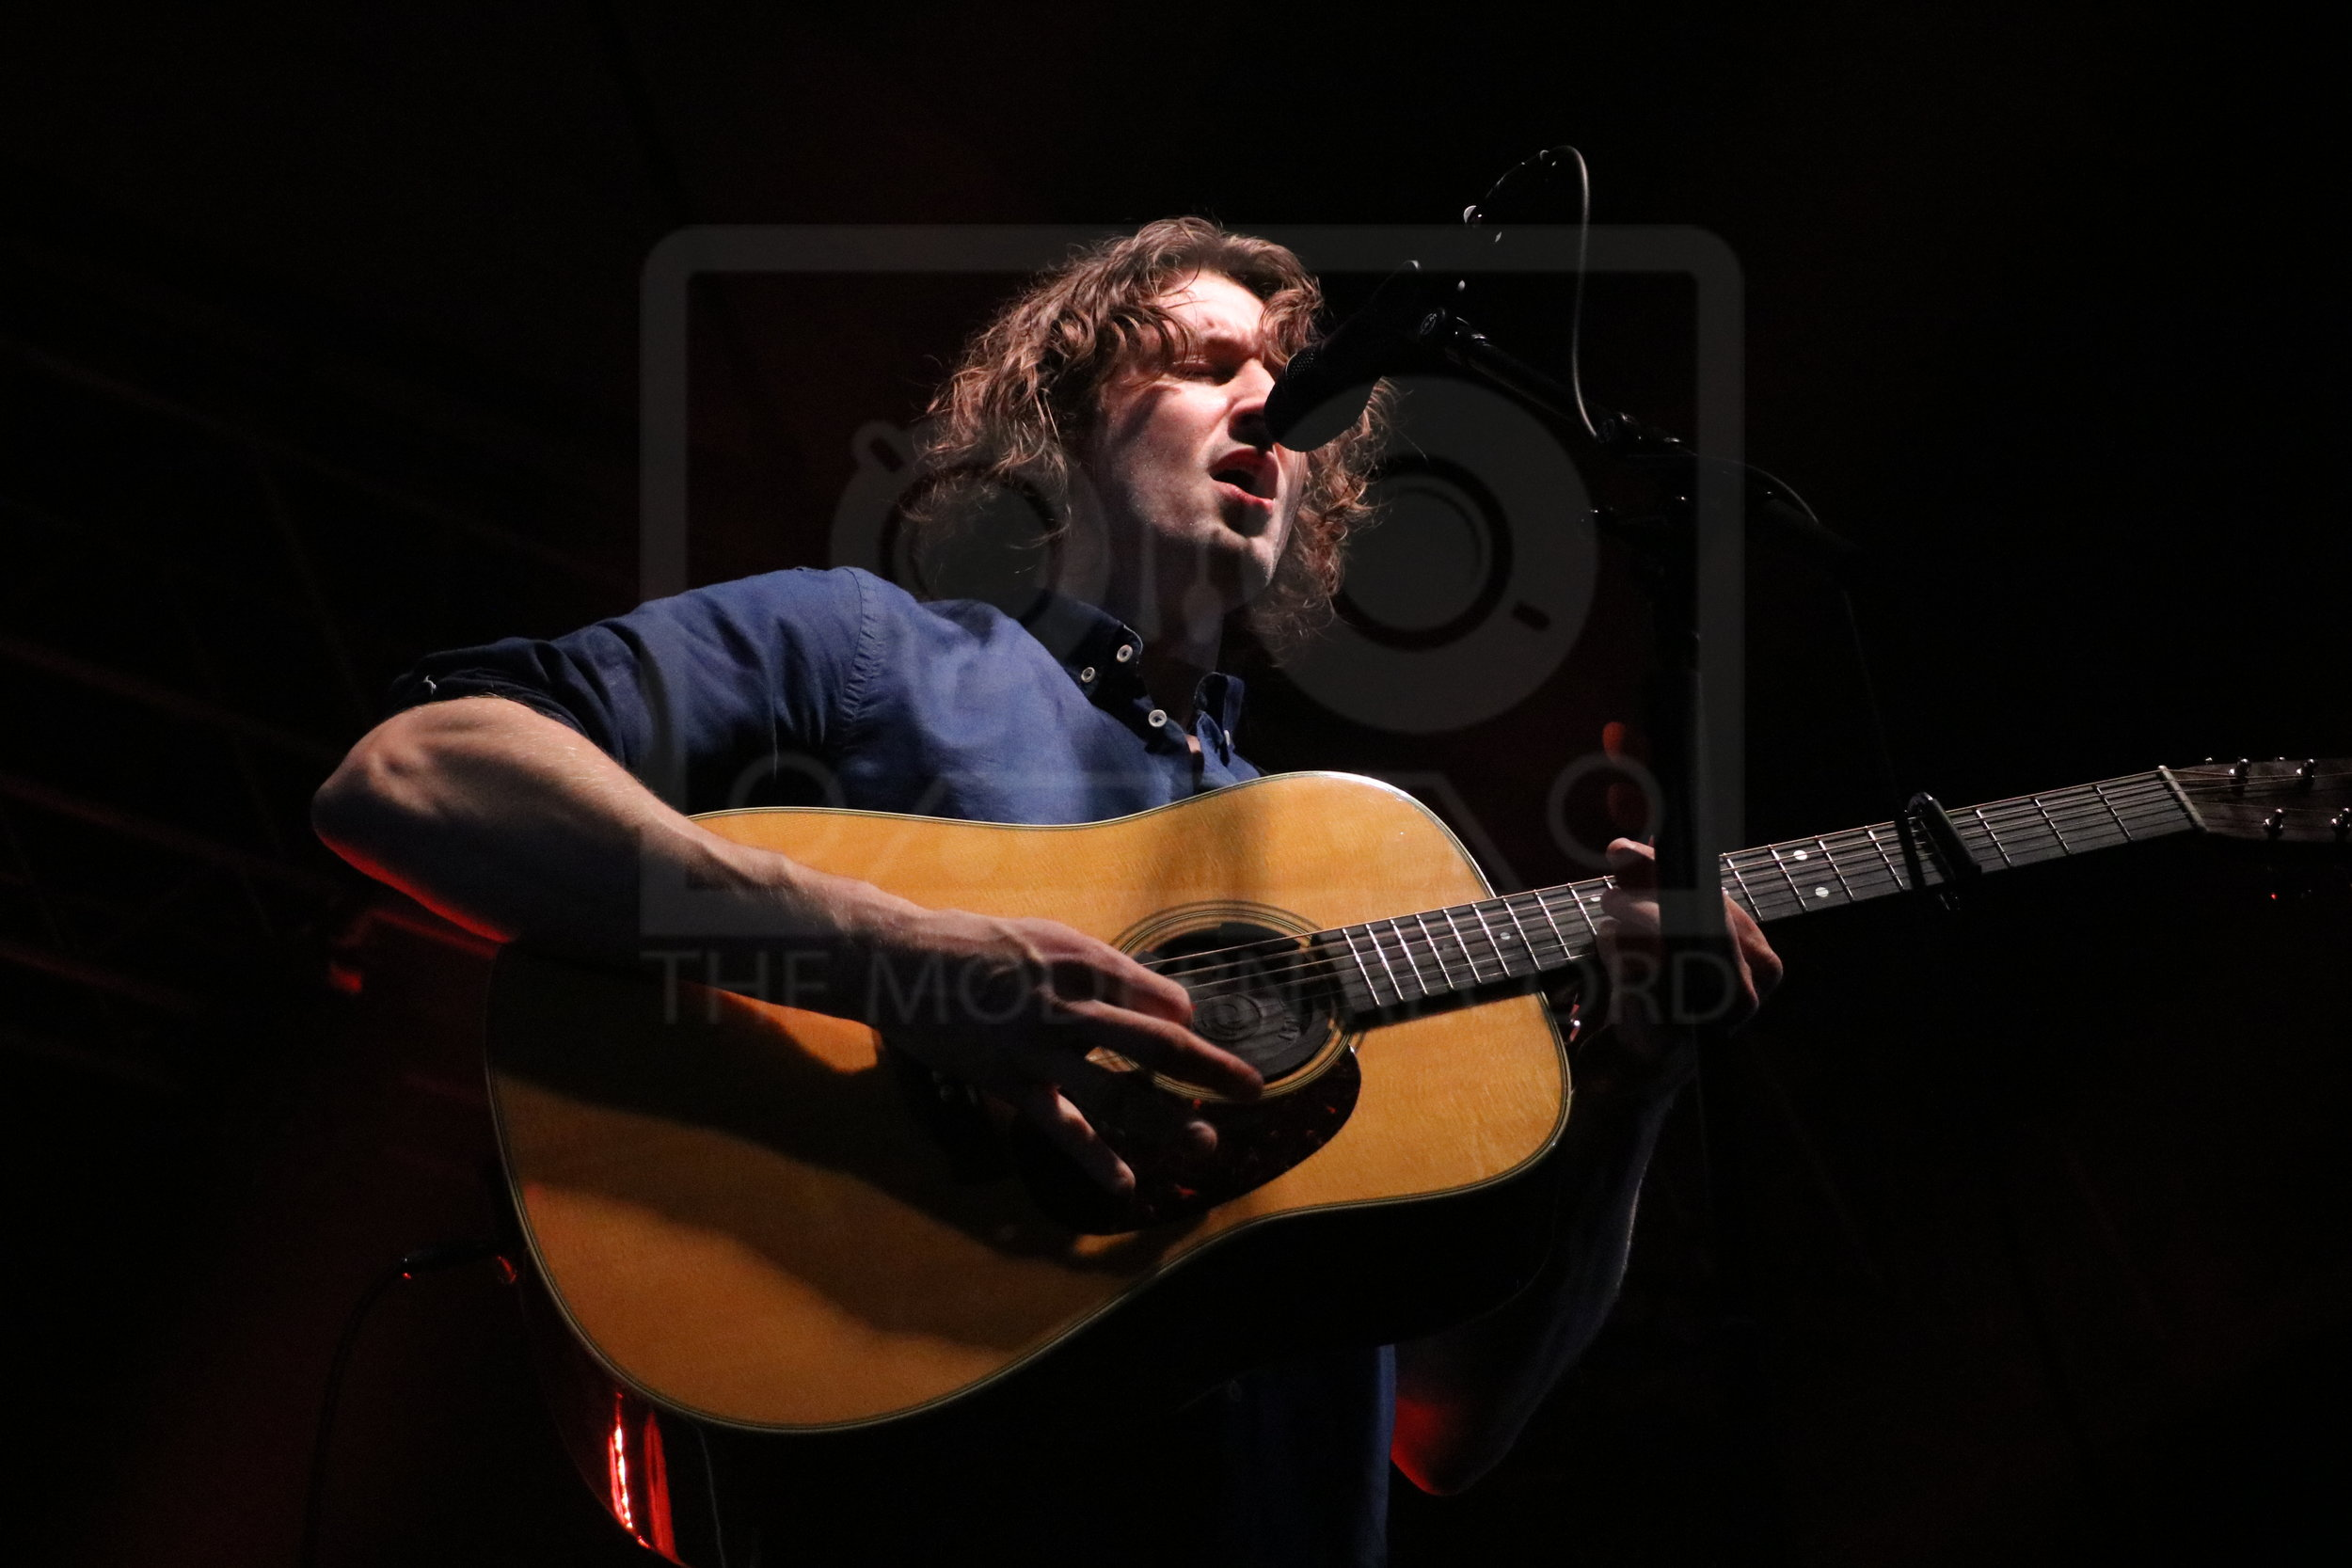 DEAN LEWIS PERFORMING GLASGOW'S SWG3 - 18.04.2019  PICTURE BY: COREY MCKAY PHOTOGRAPHY